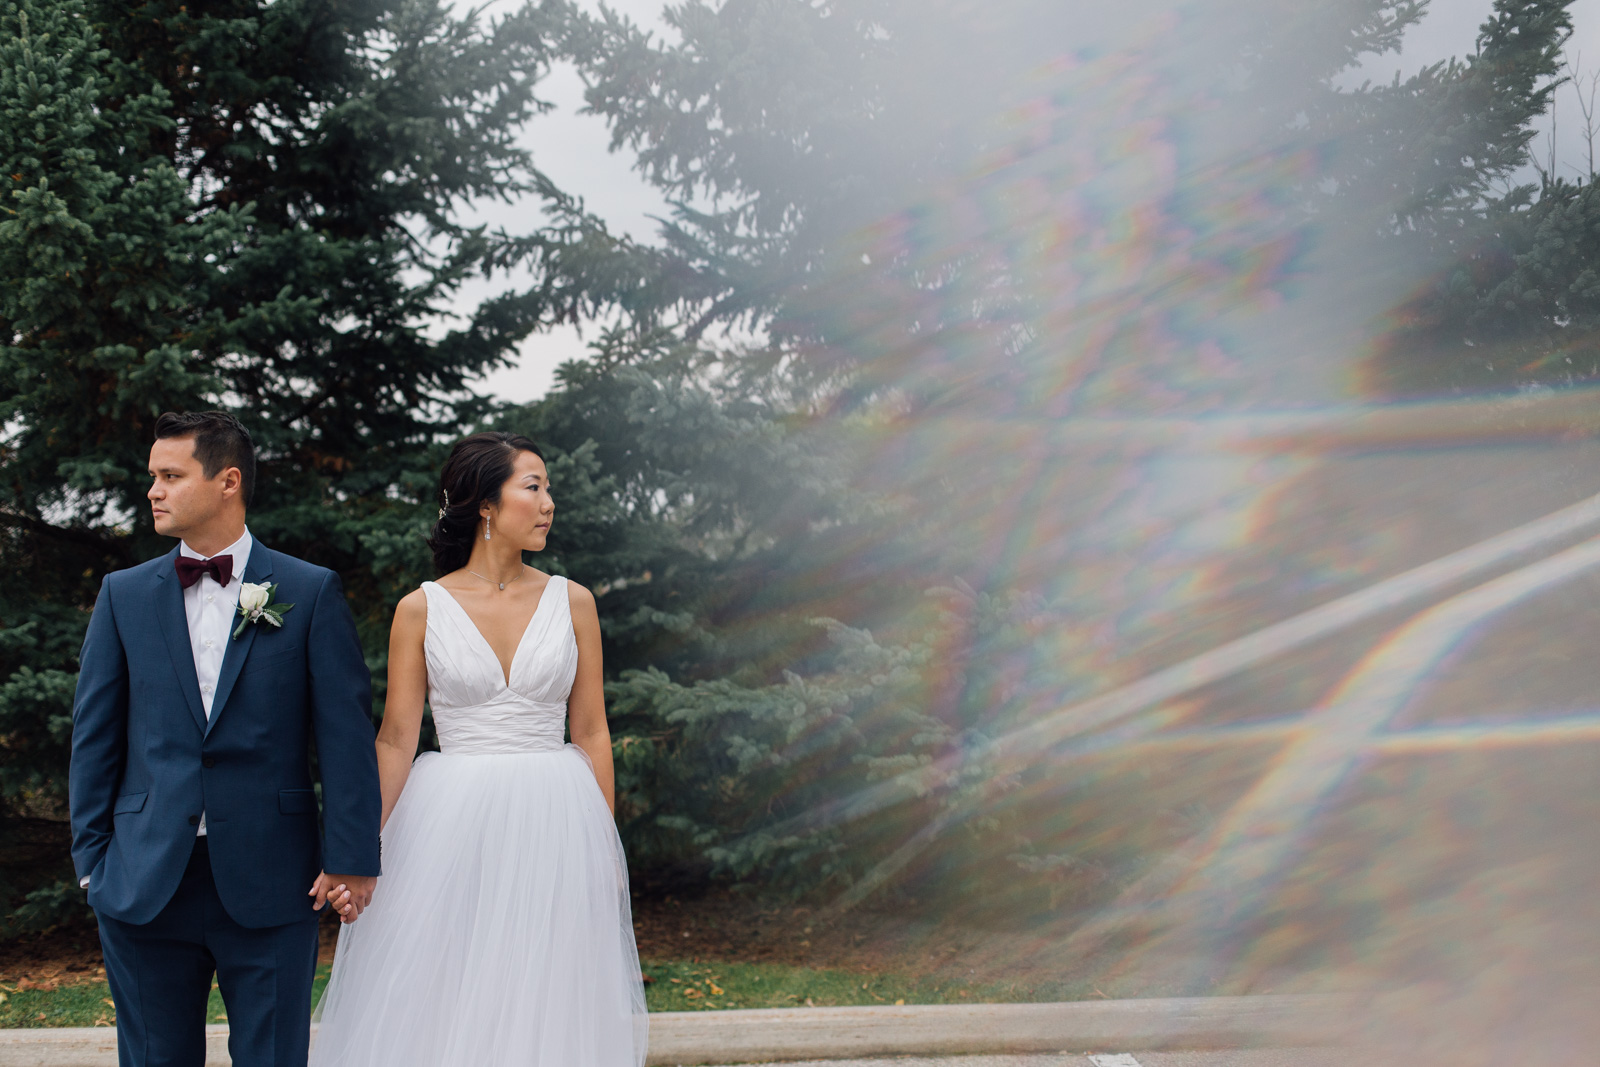 vaughn-wedding-photography-images-by-nick-driver-and-sath-arul-of-artanis-collective_13.jpg